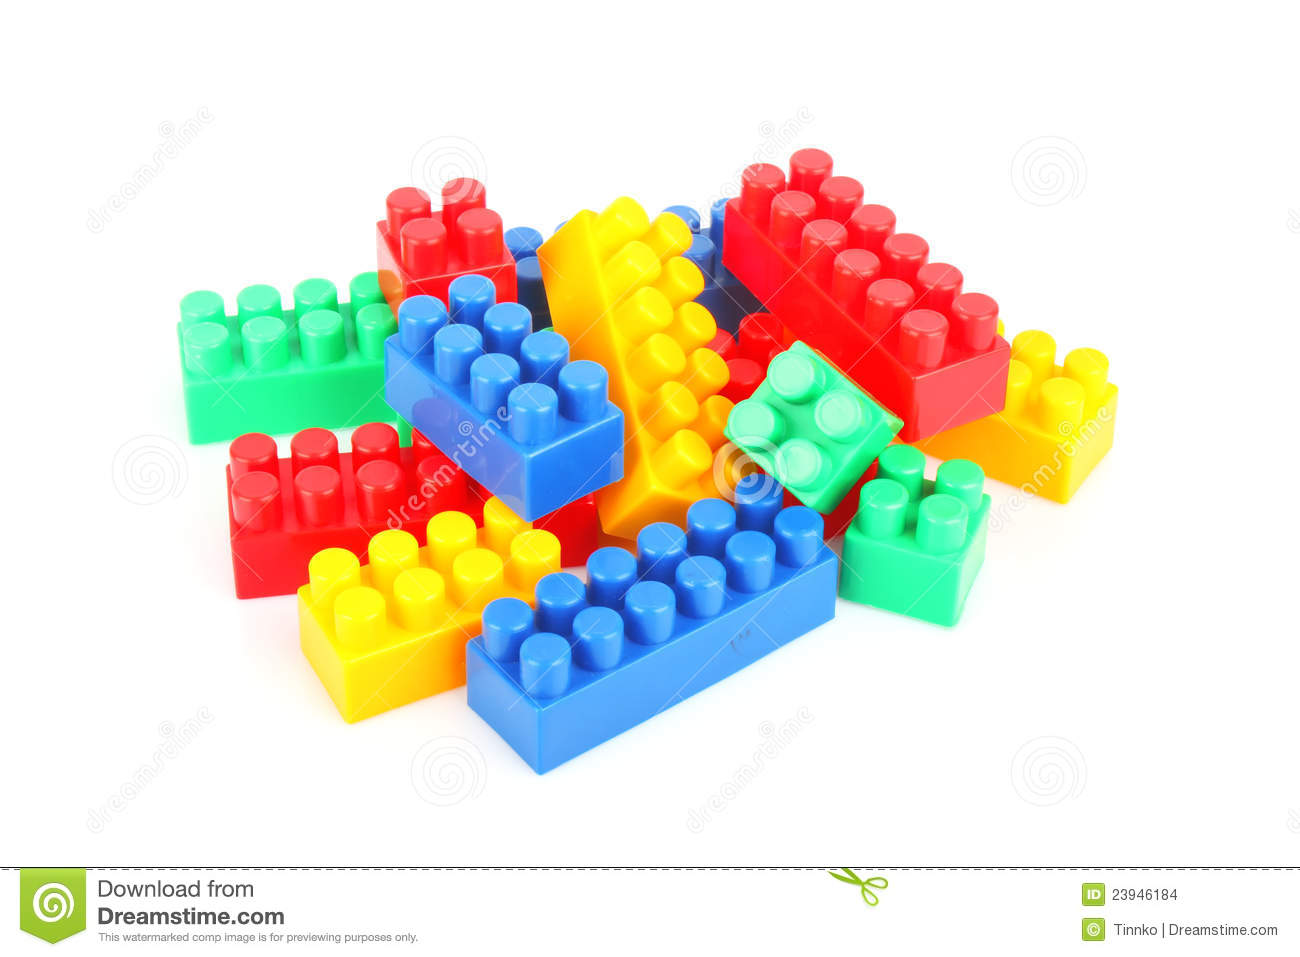 Toy Building Blocks Image36384877 further Royalty Free Stock Photo Box ...